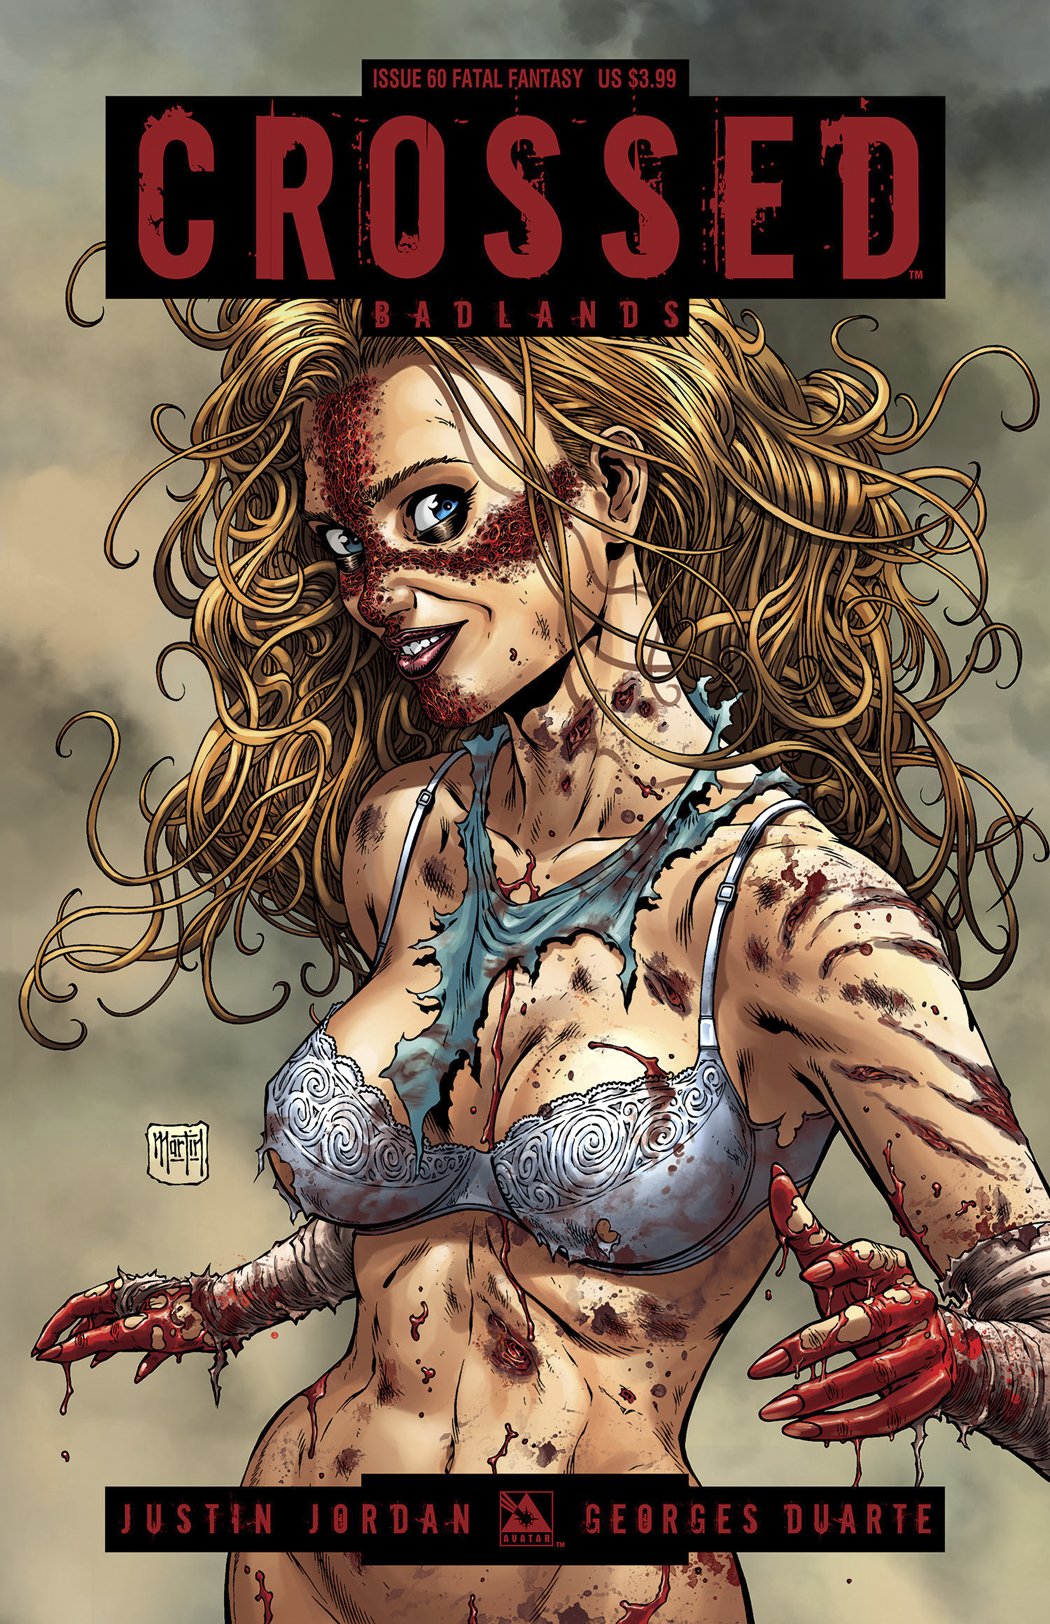 CROSSED BADLANDS #60 FATAL FANTASY CVR (MR)